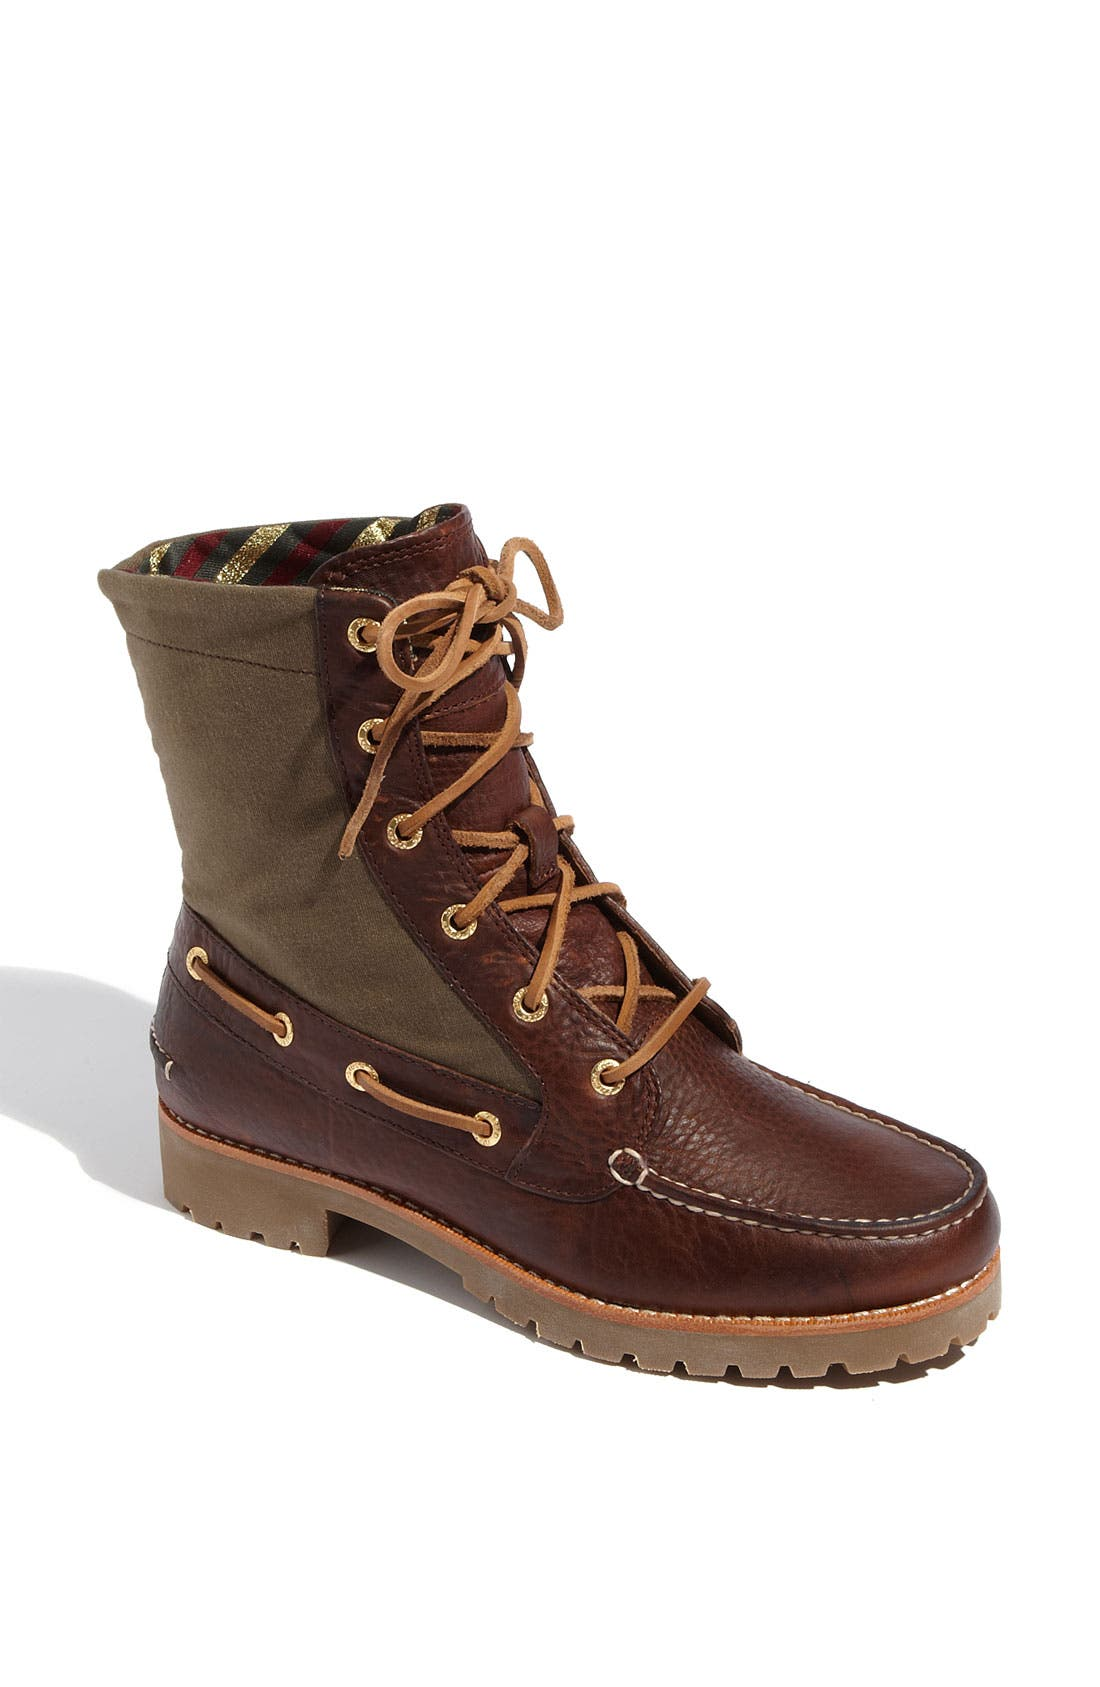 Main Image - Sperry Top-Sider® 'Avon' Boot